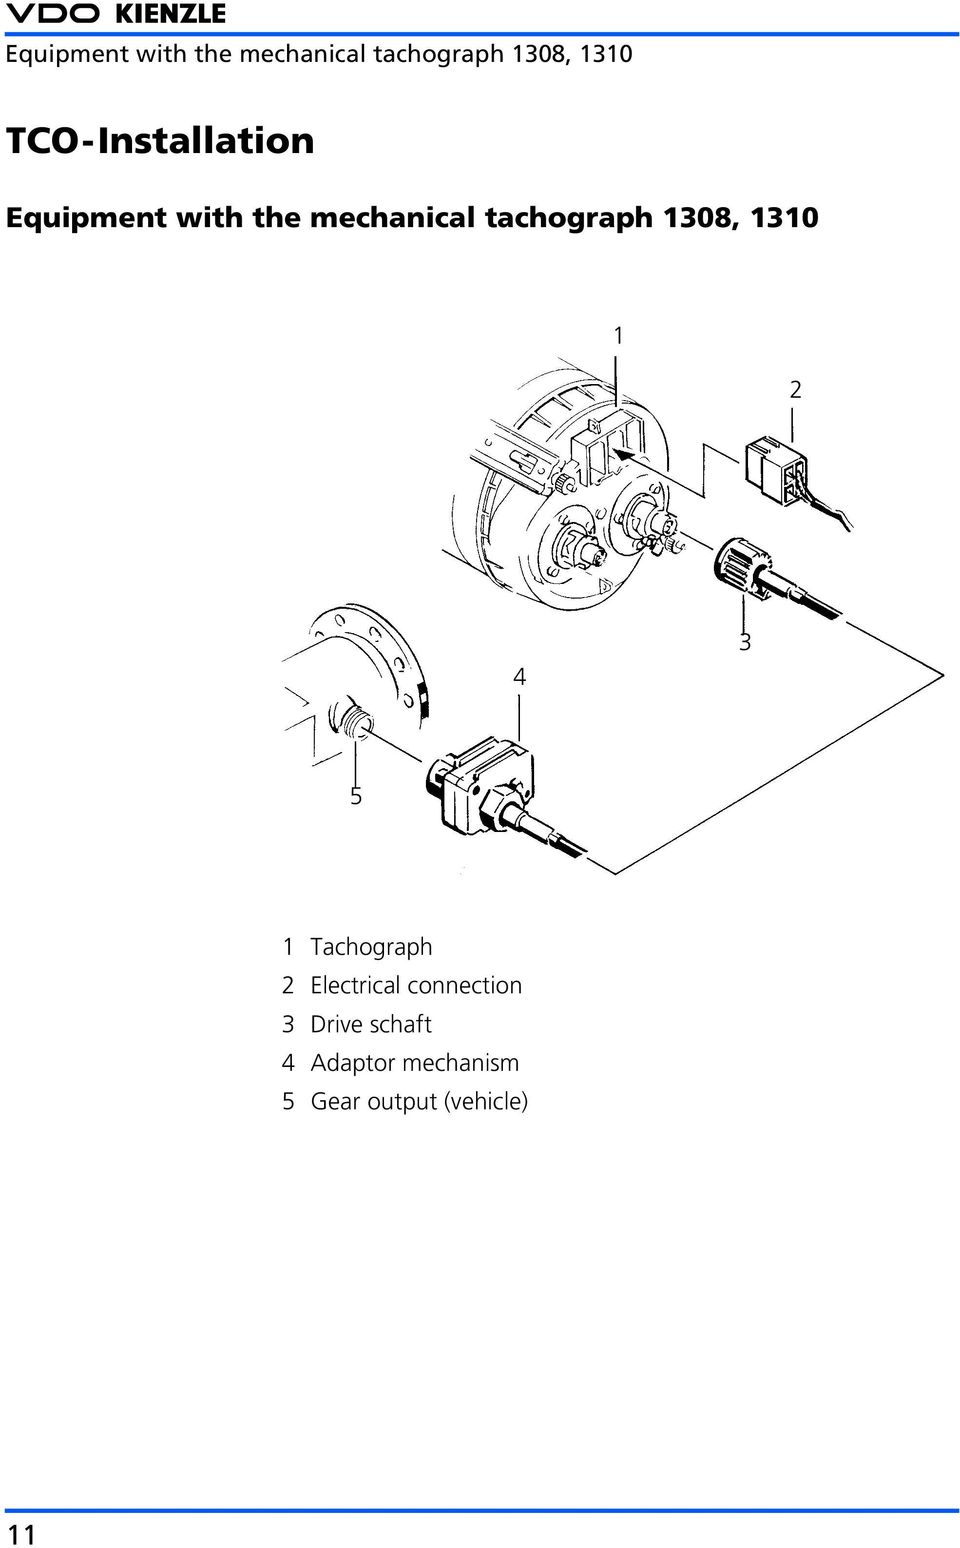 Vdo 1318 Tachograph Wiring Diagram Libraries Switch Boat Lift Bbremas Productinformation Tachographs In The Cva Market Pdfconnection 3 Drive Schaft 4 Adaptor Mechanism 5 Gear